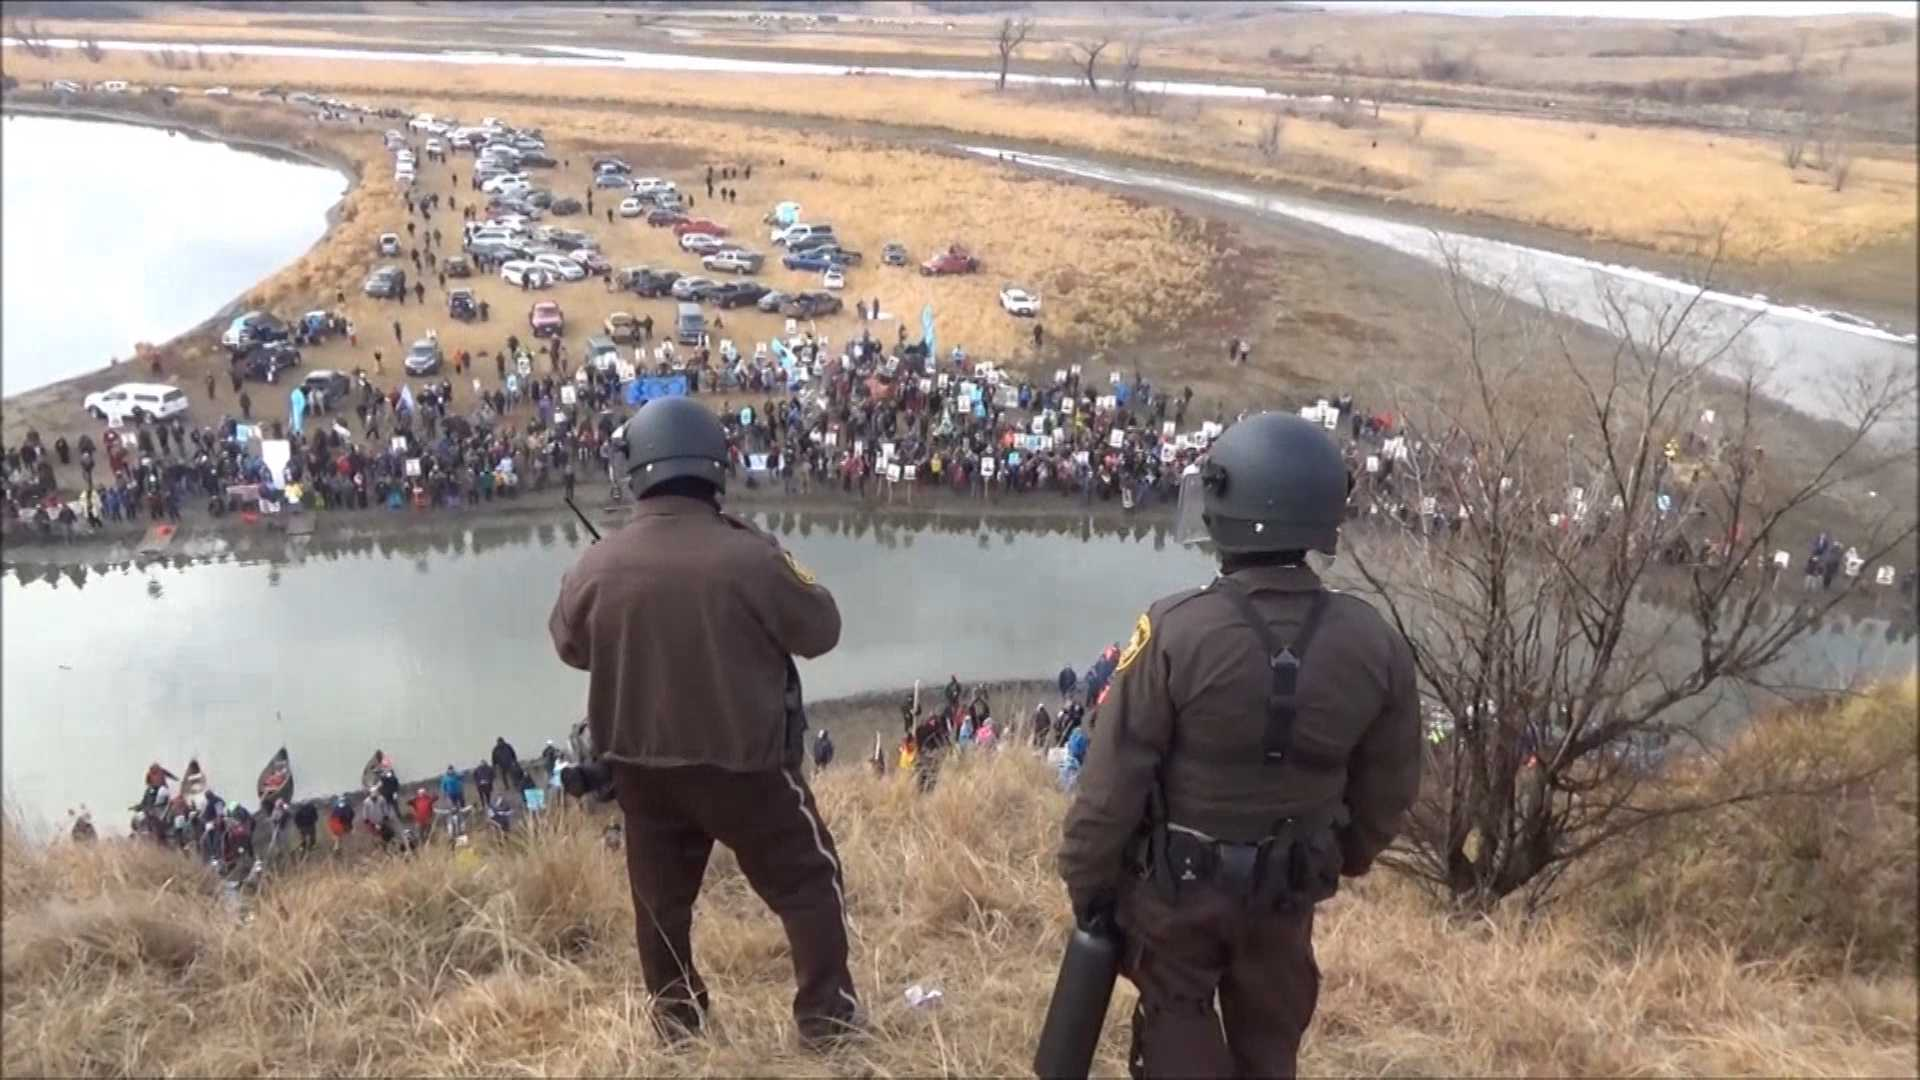 Protesters at the site of the proposed Dakota Access oil pipeline route on Thanksgiving Day, 2016